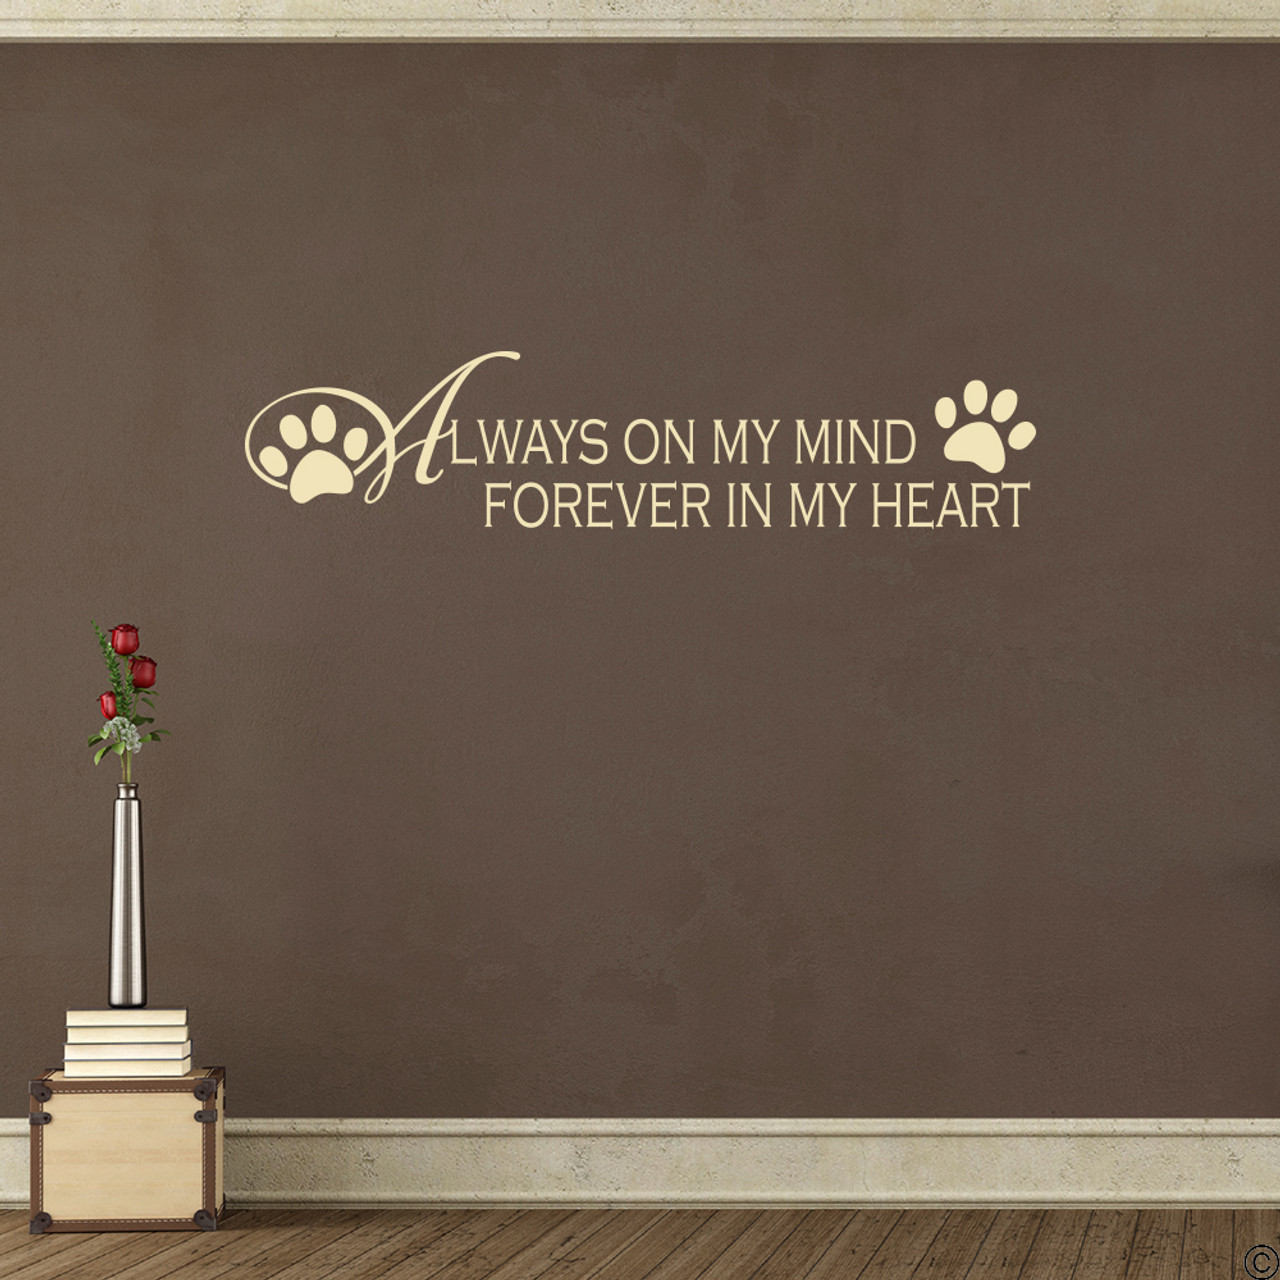 Paw Prints and Always on My Mind Forever in My Heart Vinyl Decal Wall Quote L238